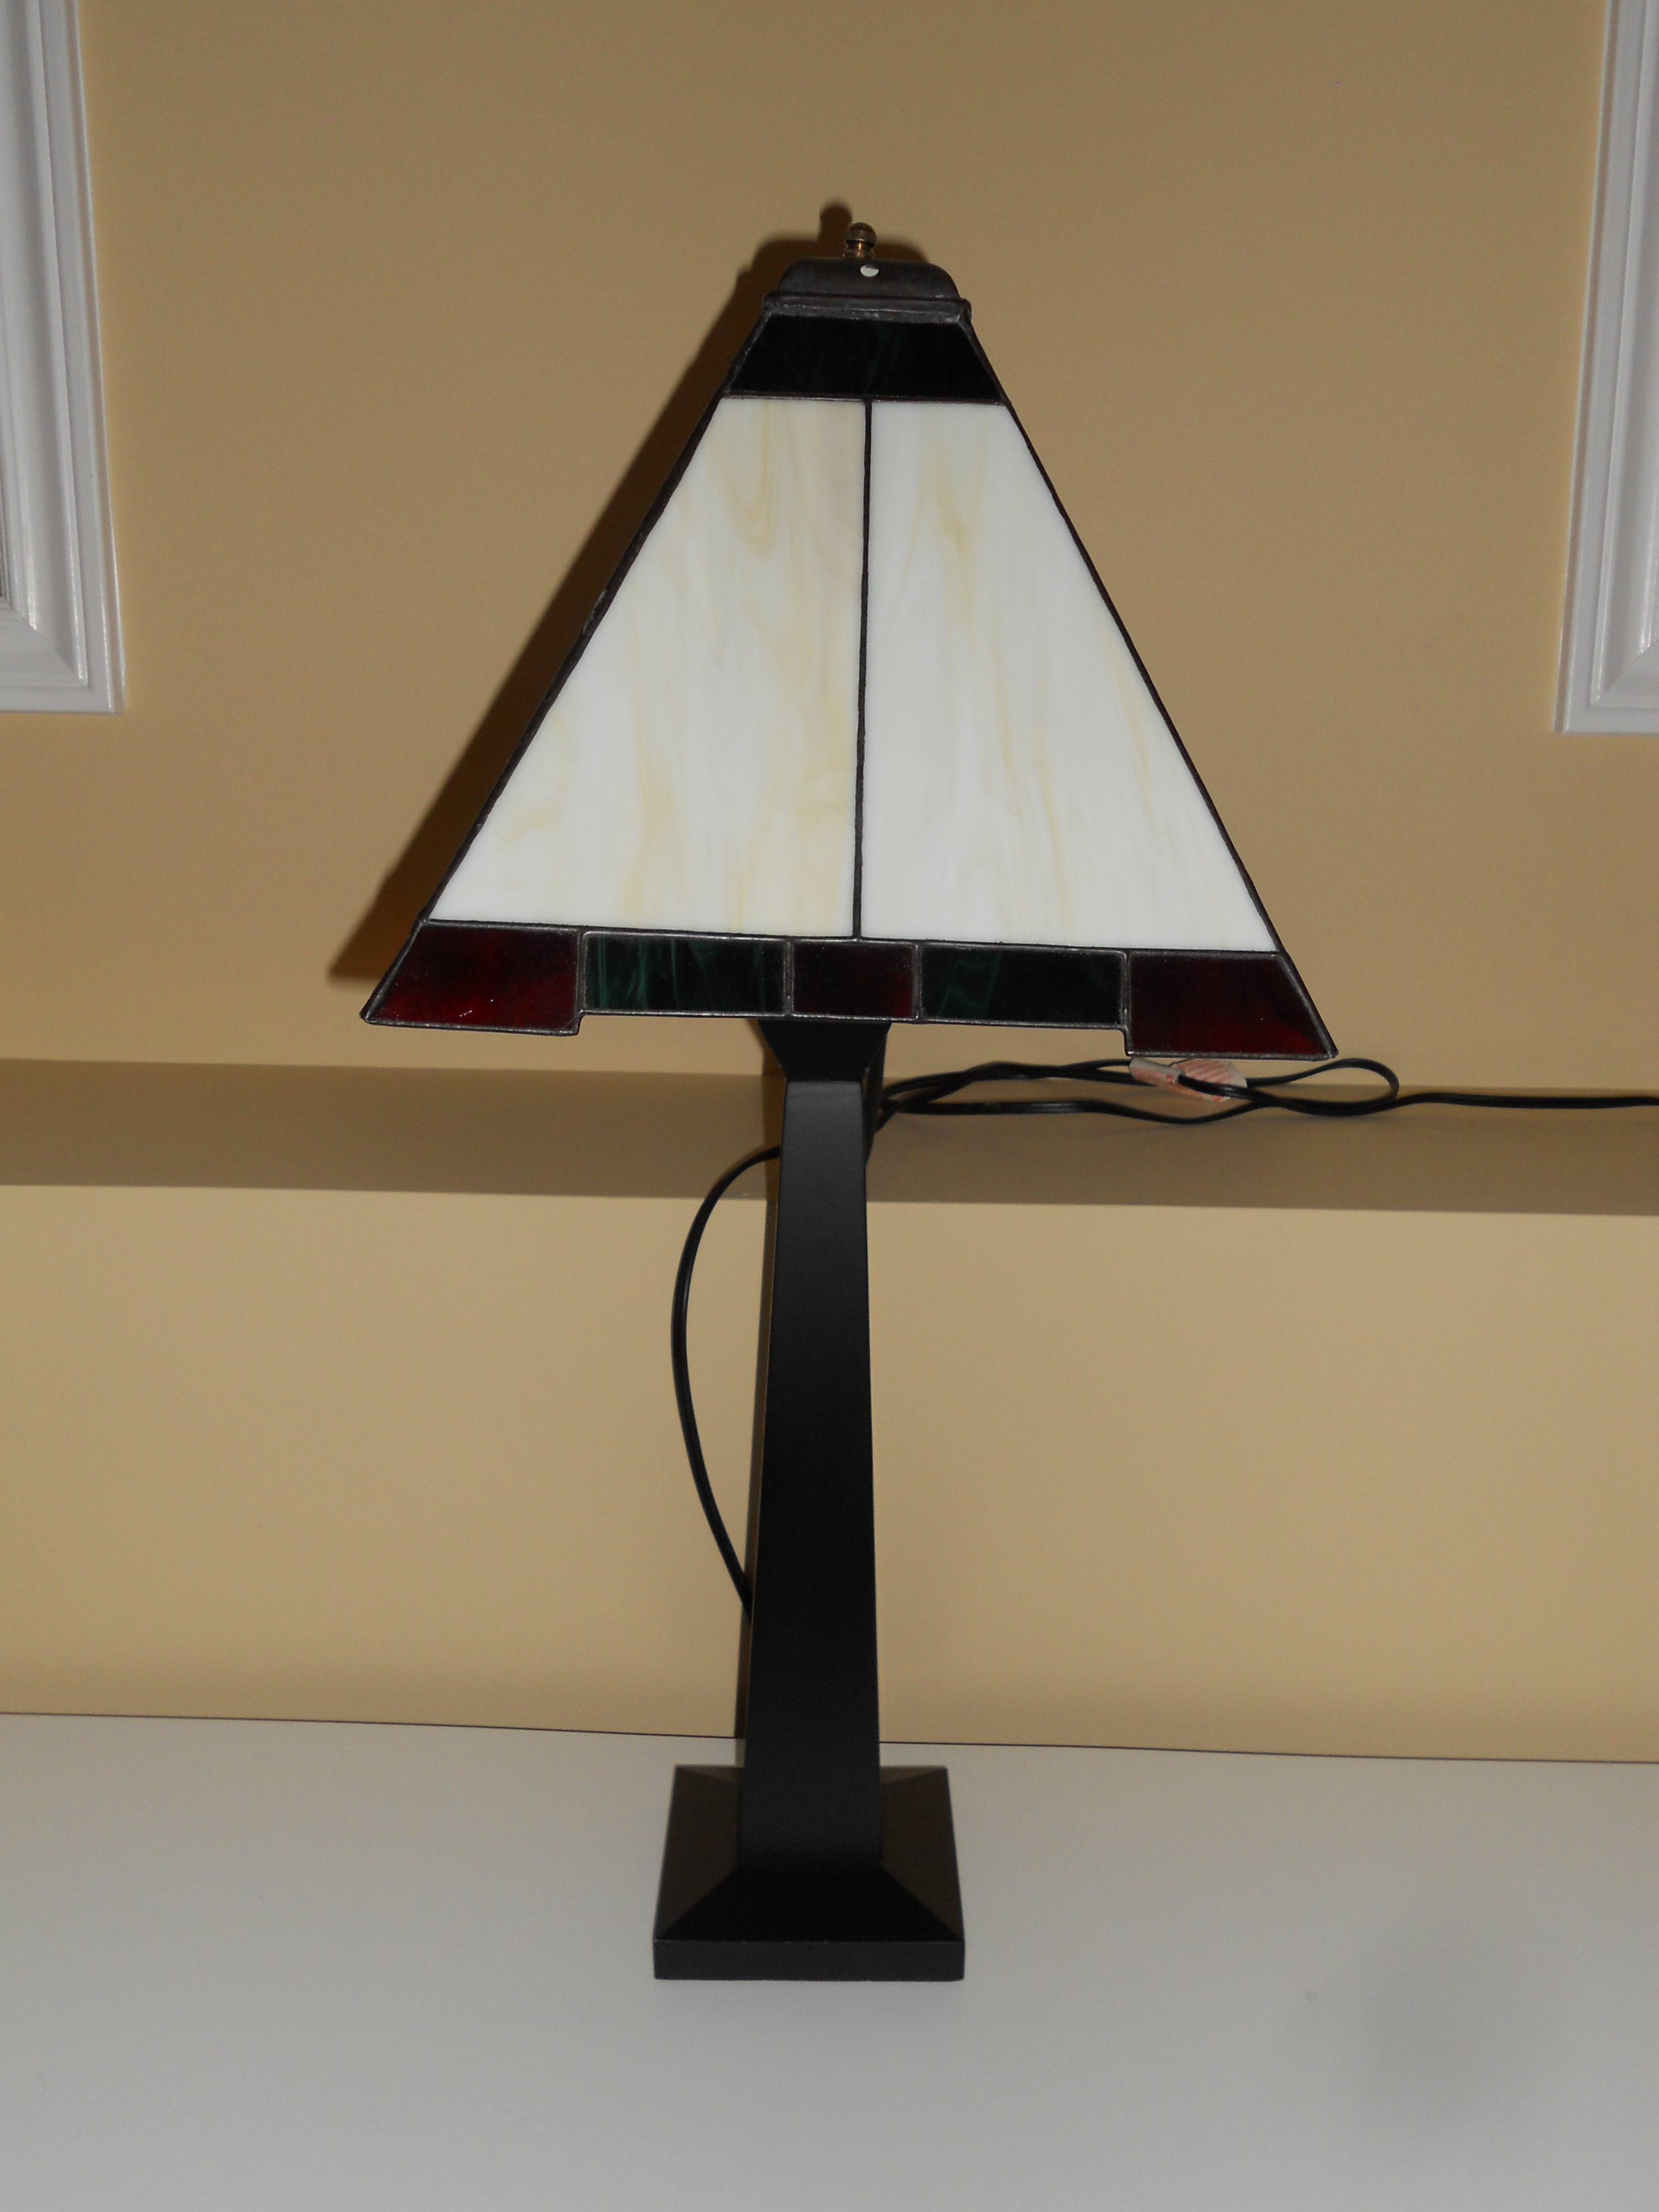 Reclaimed - Arts and Crafts style lamp